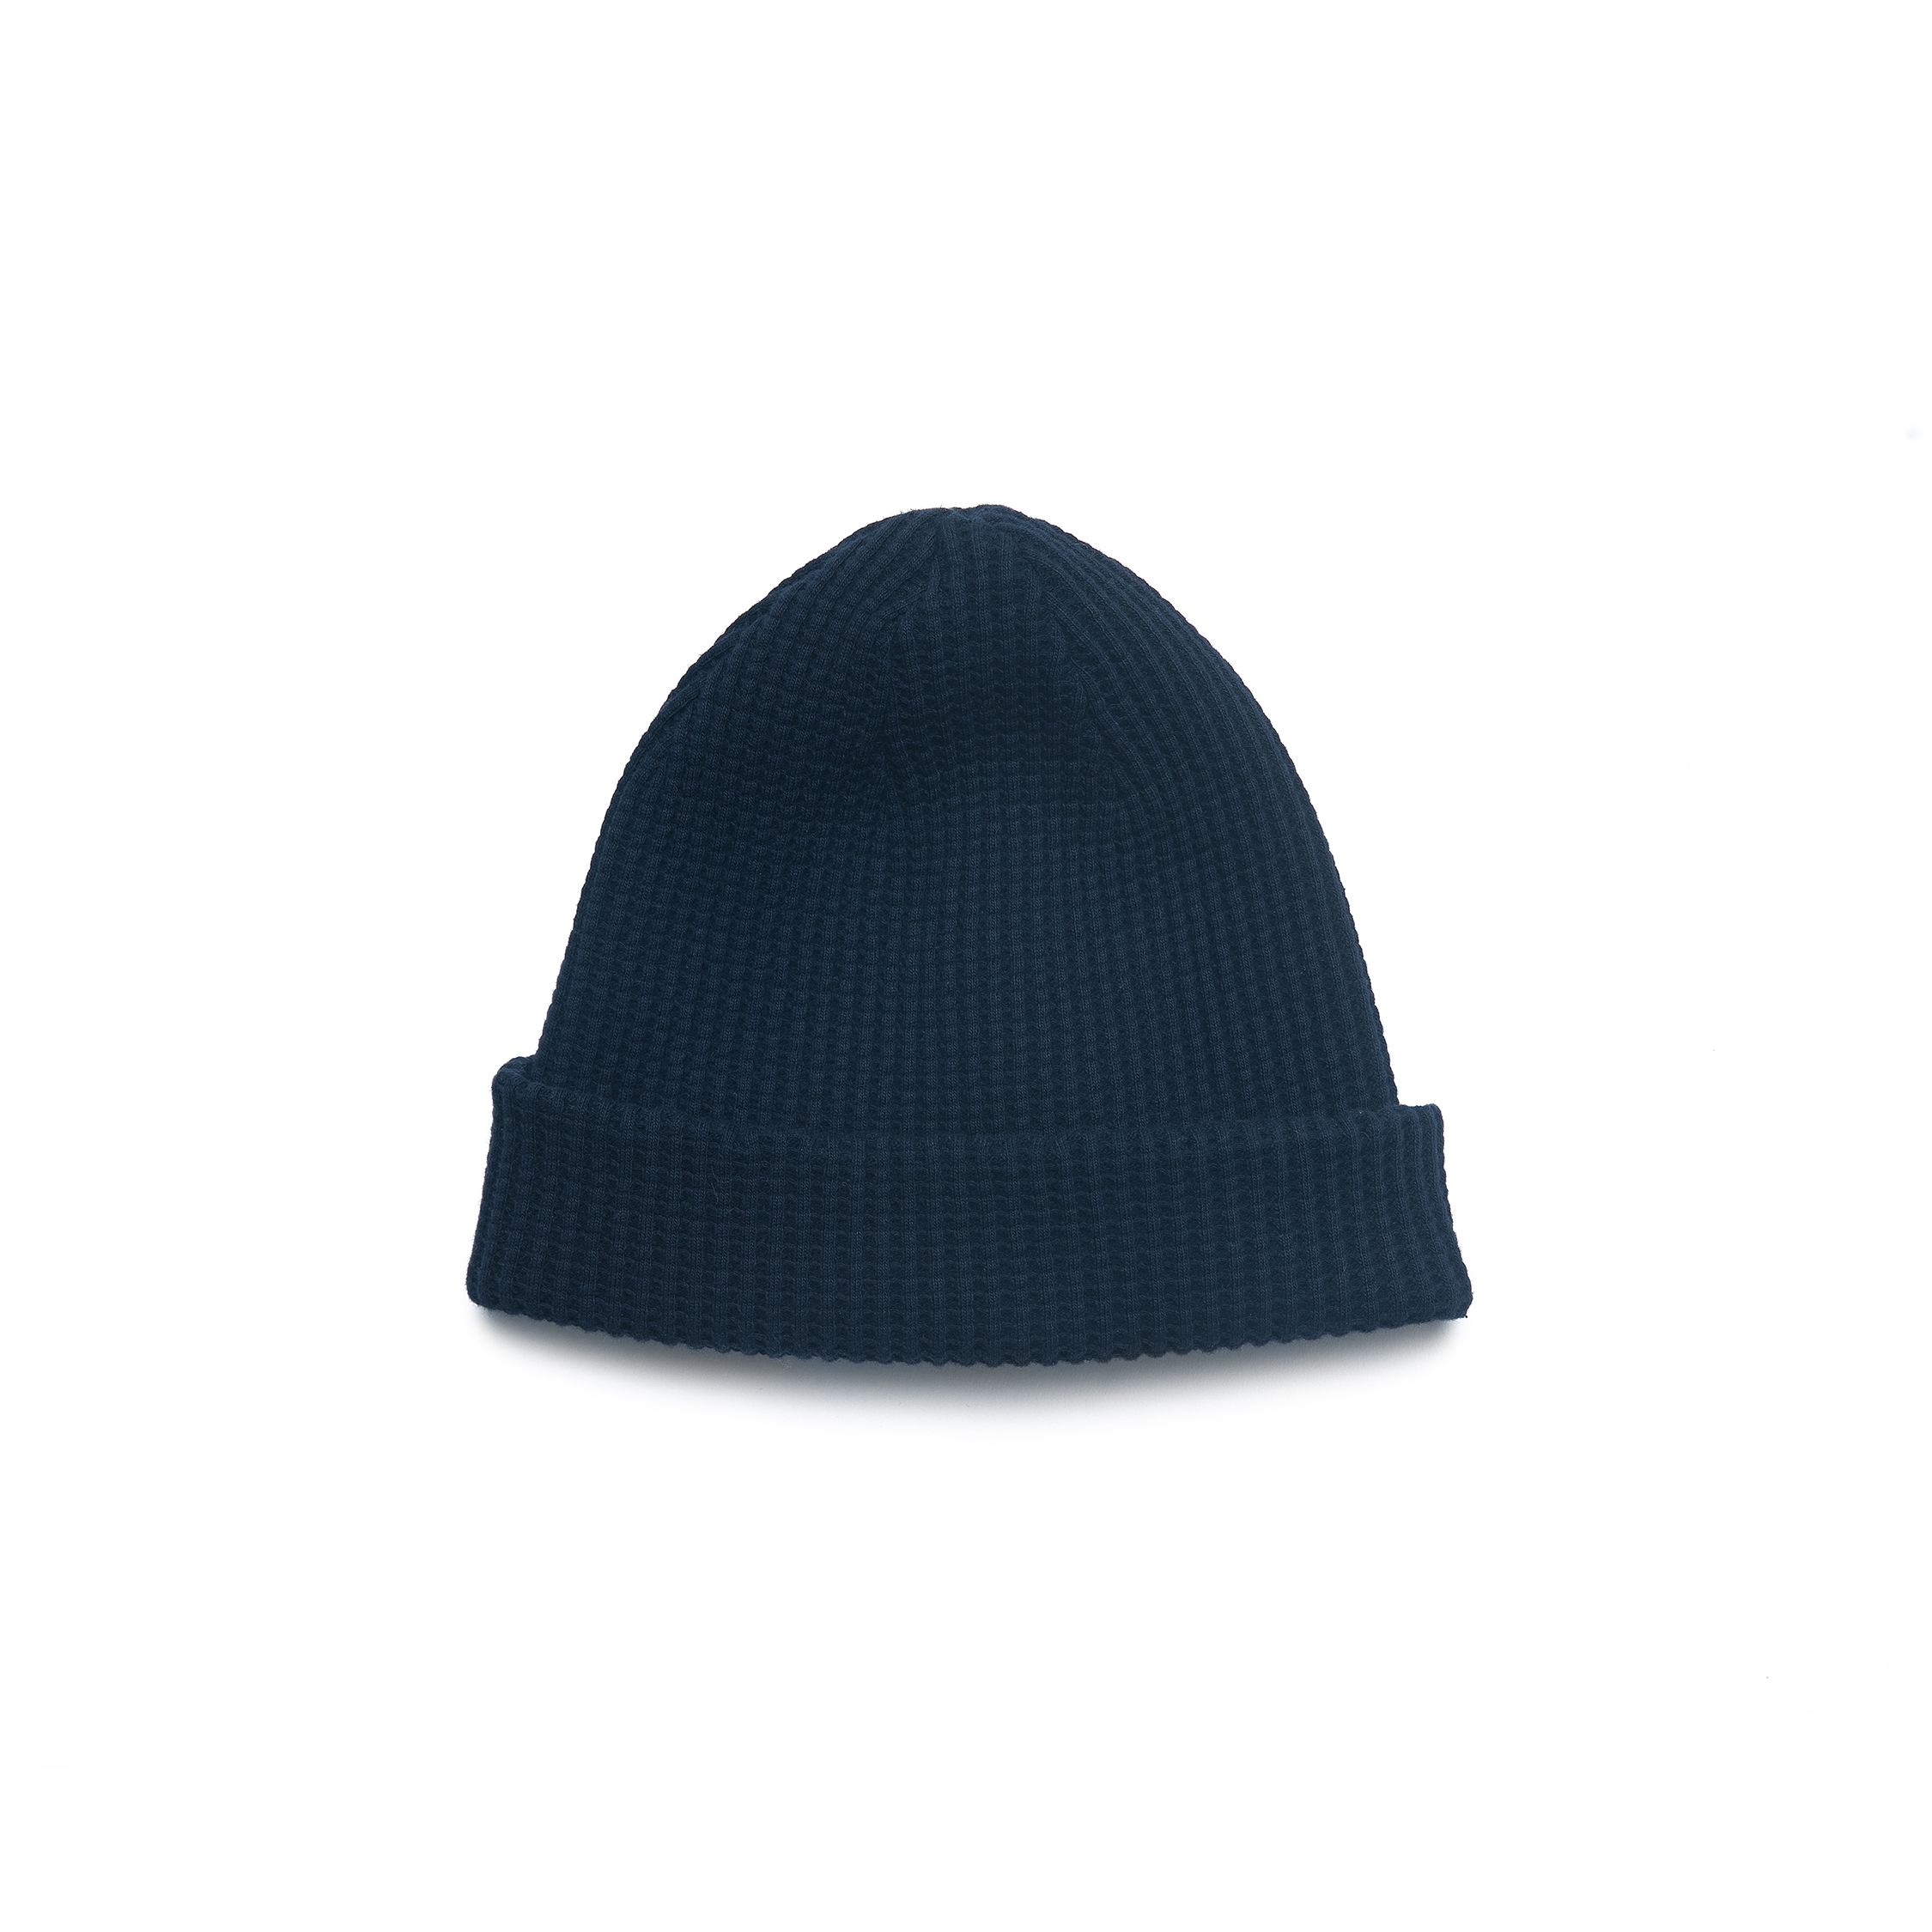 Homesun Knitwear Heavyweight Thermal Knit Cap :: Indigo